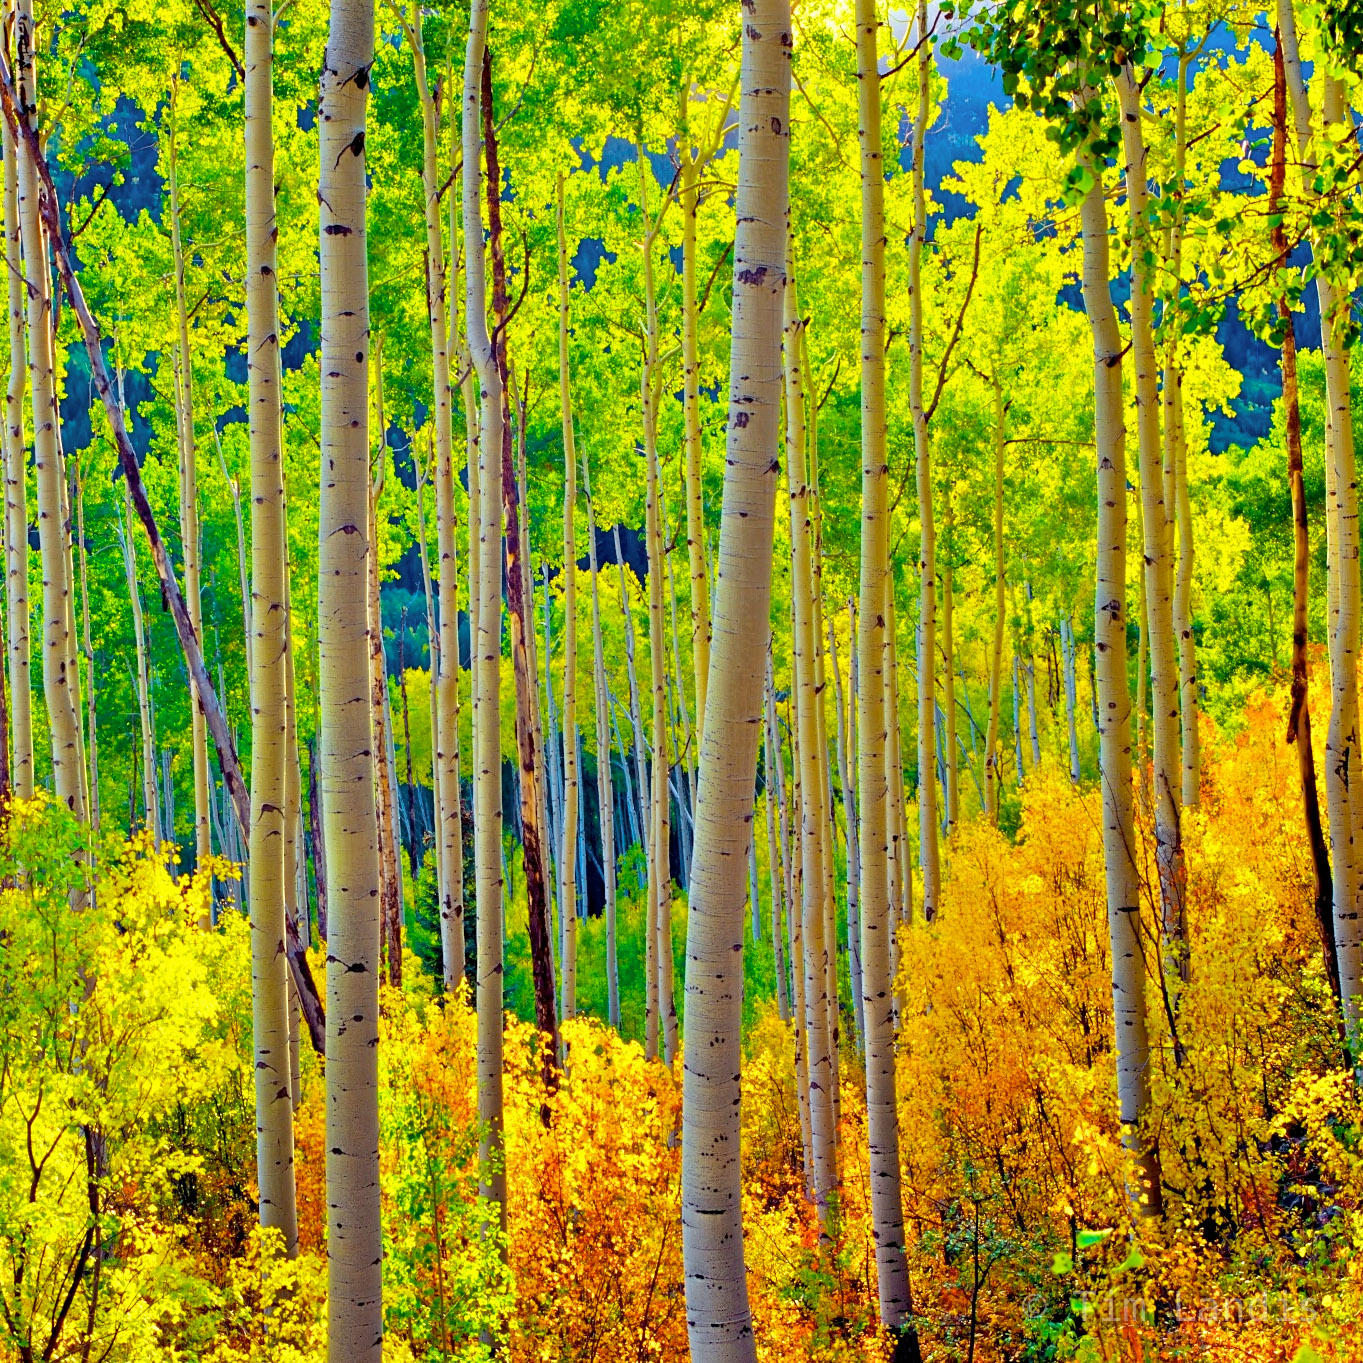 Aspen, aspens, autumn foliage, autumn leaves, colorado, golden leaves, luminescent, yellow, yellow leaves, photo